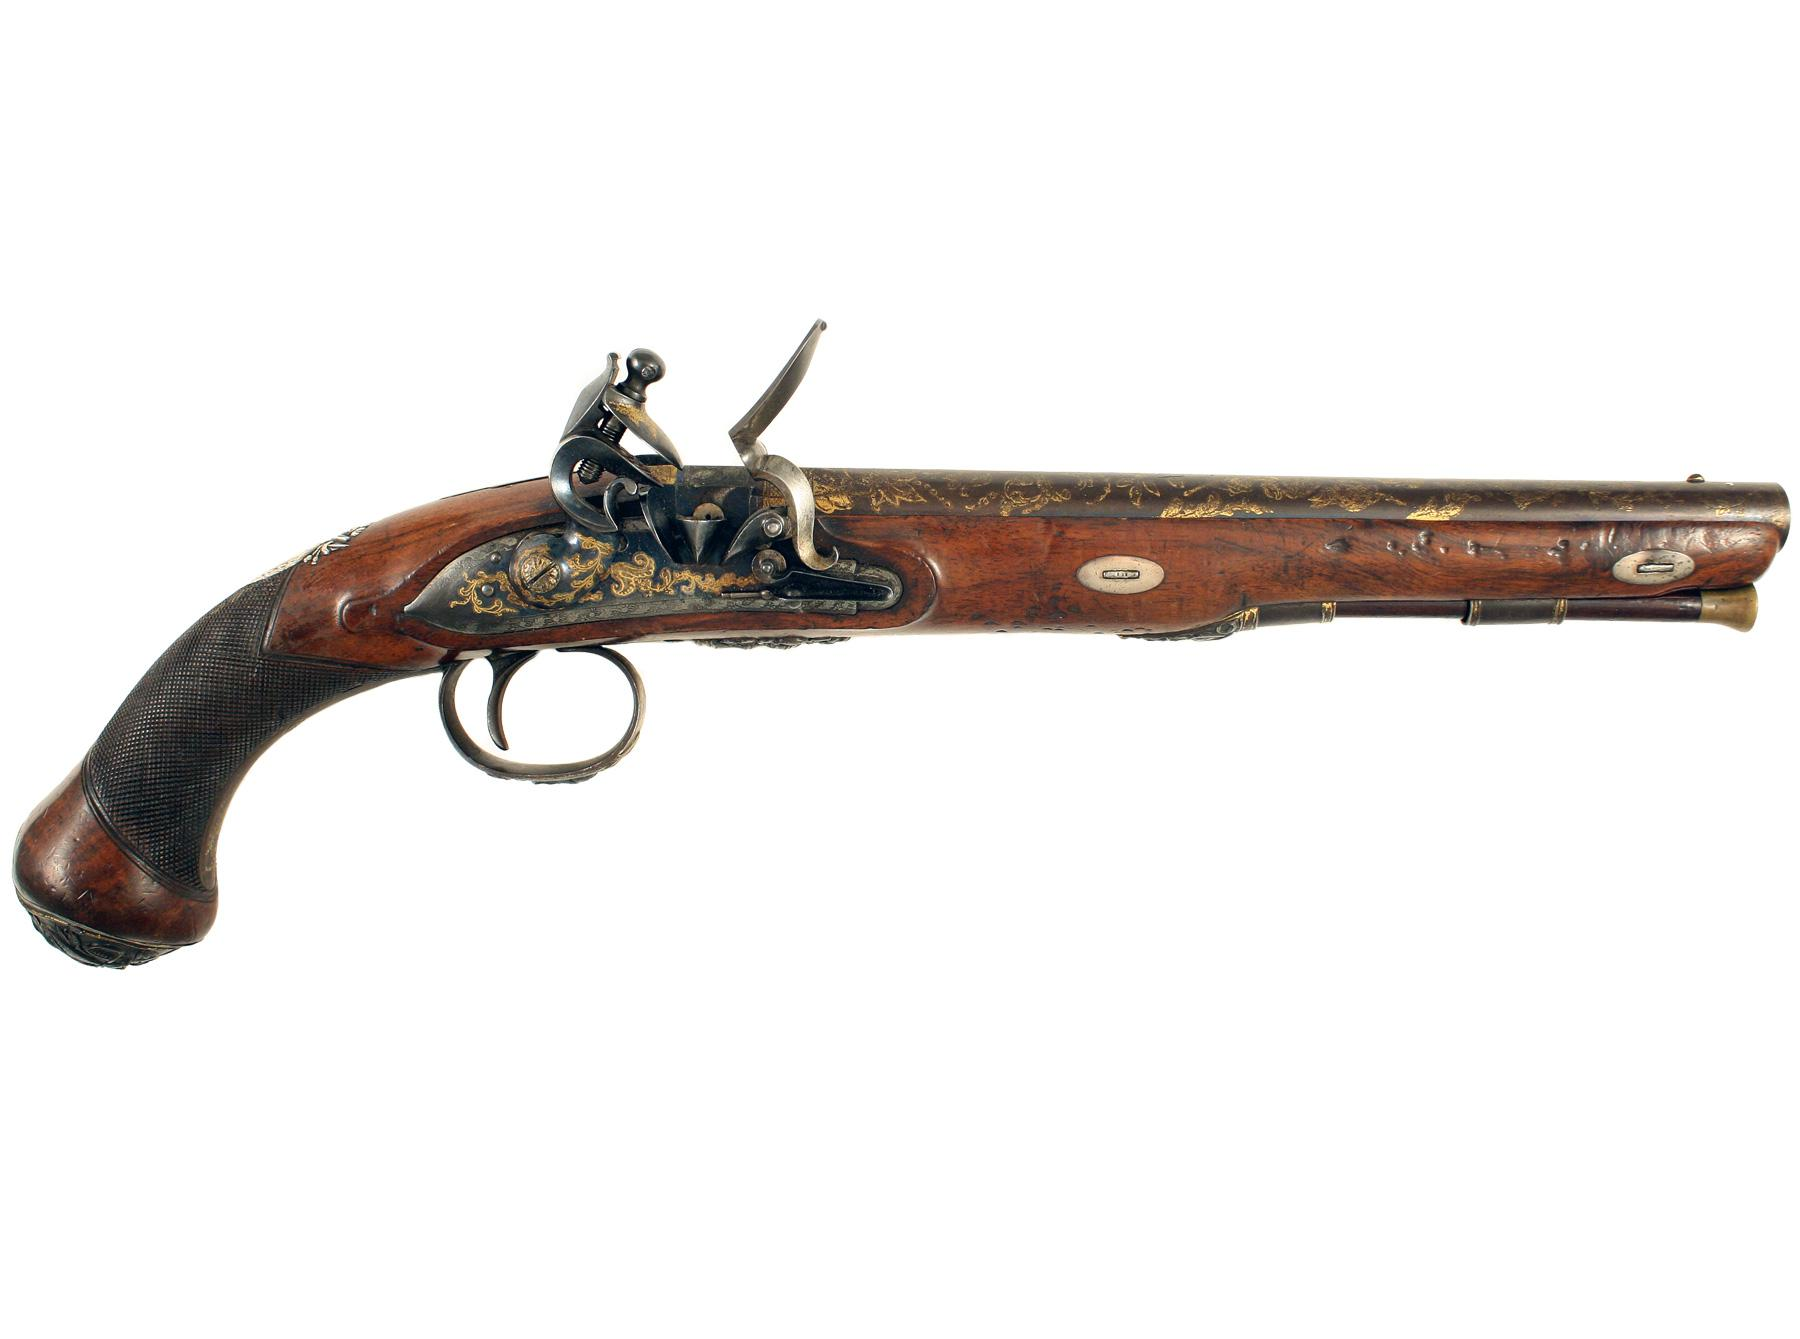 An Elaborate Flintlock Pistol